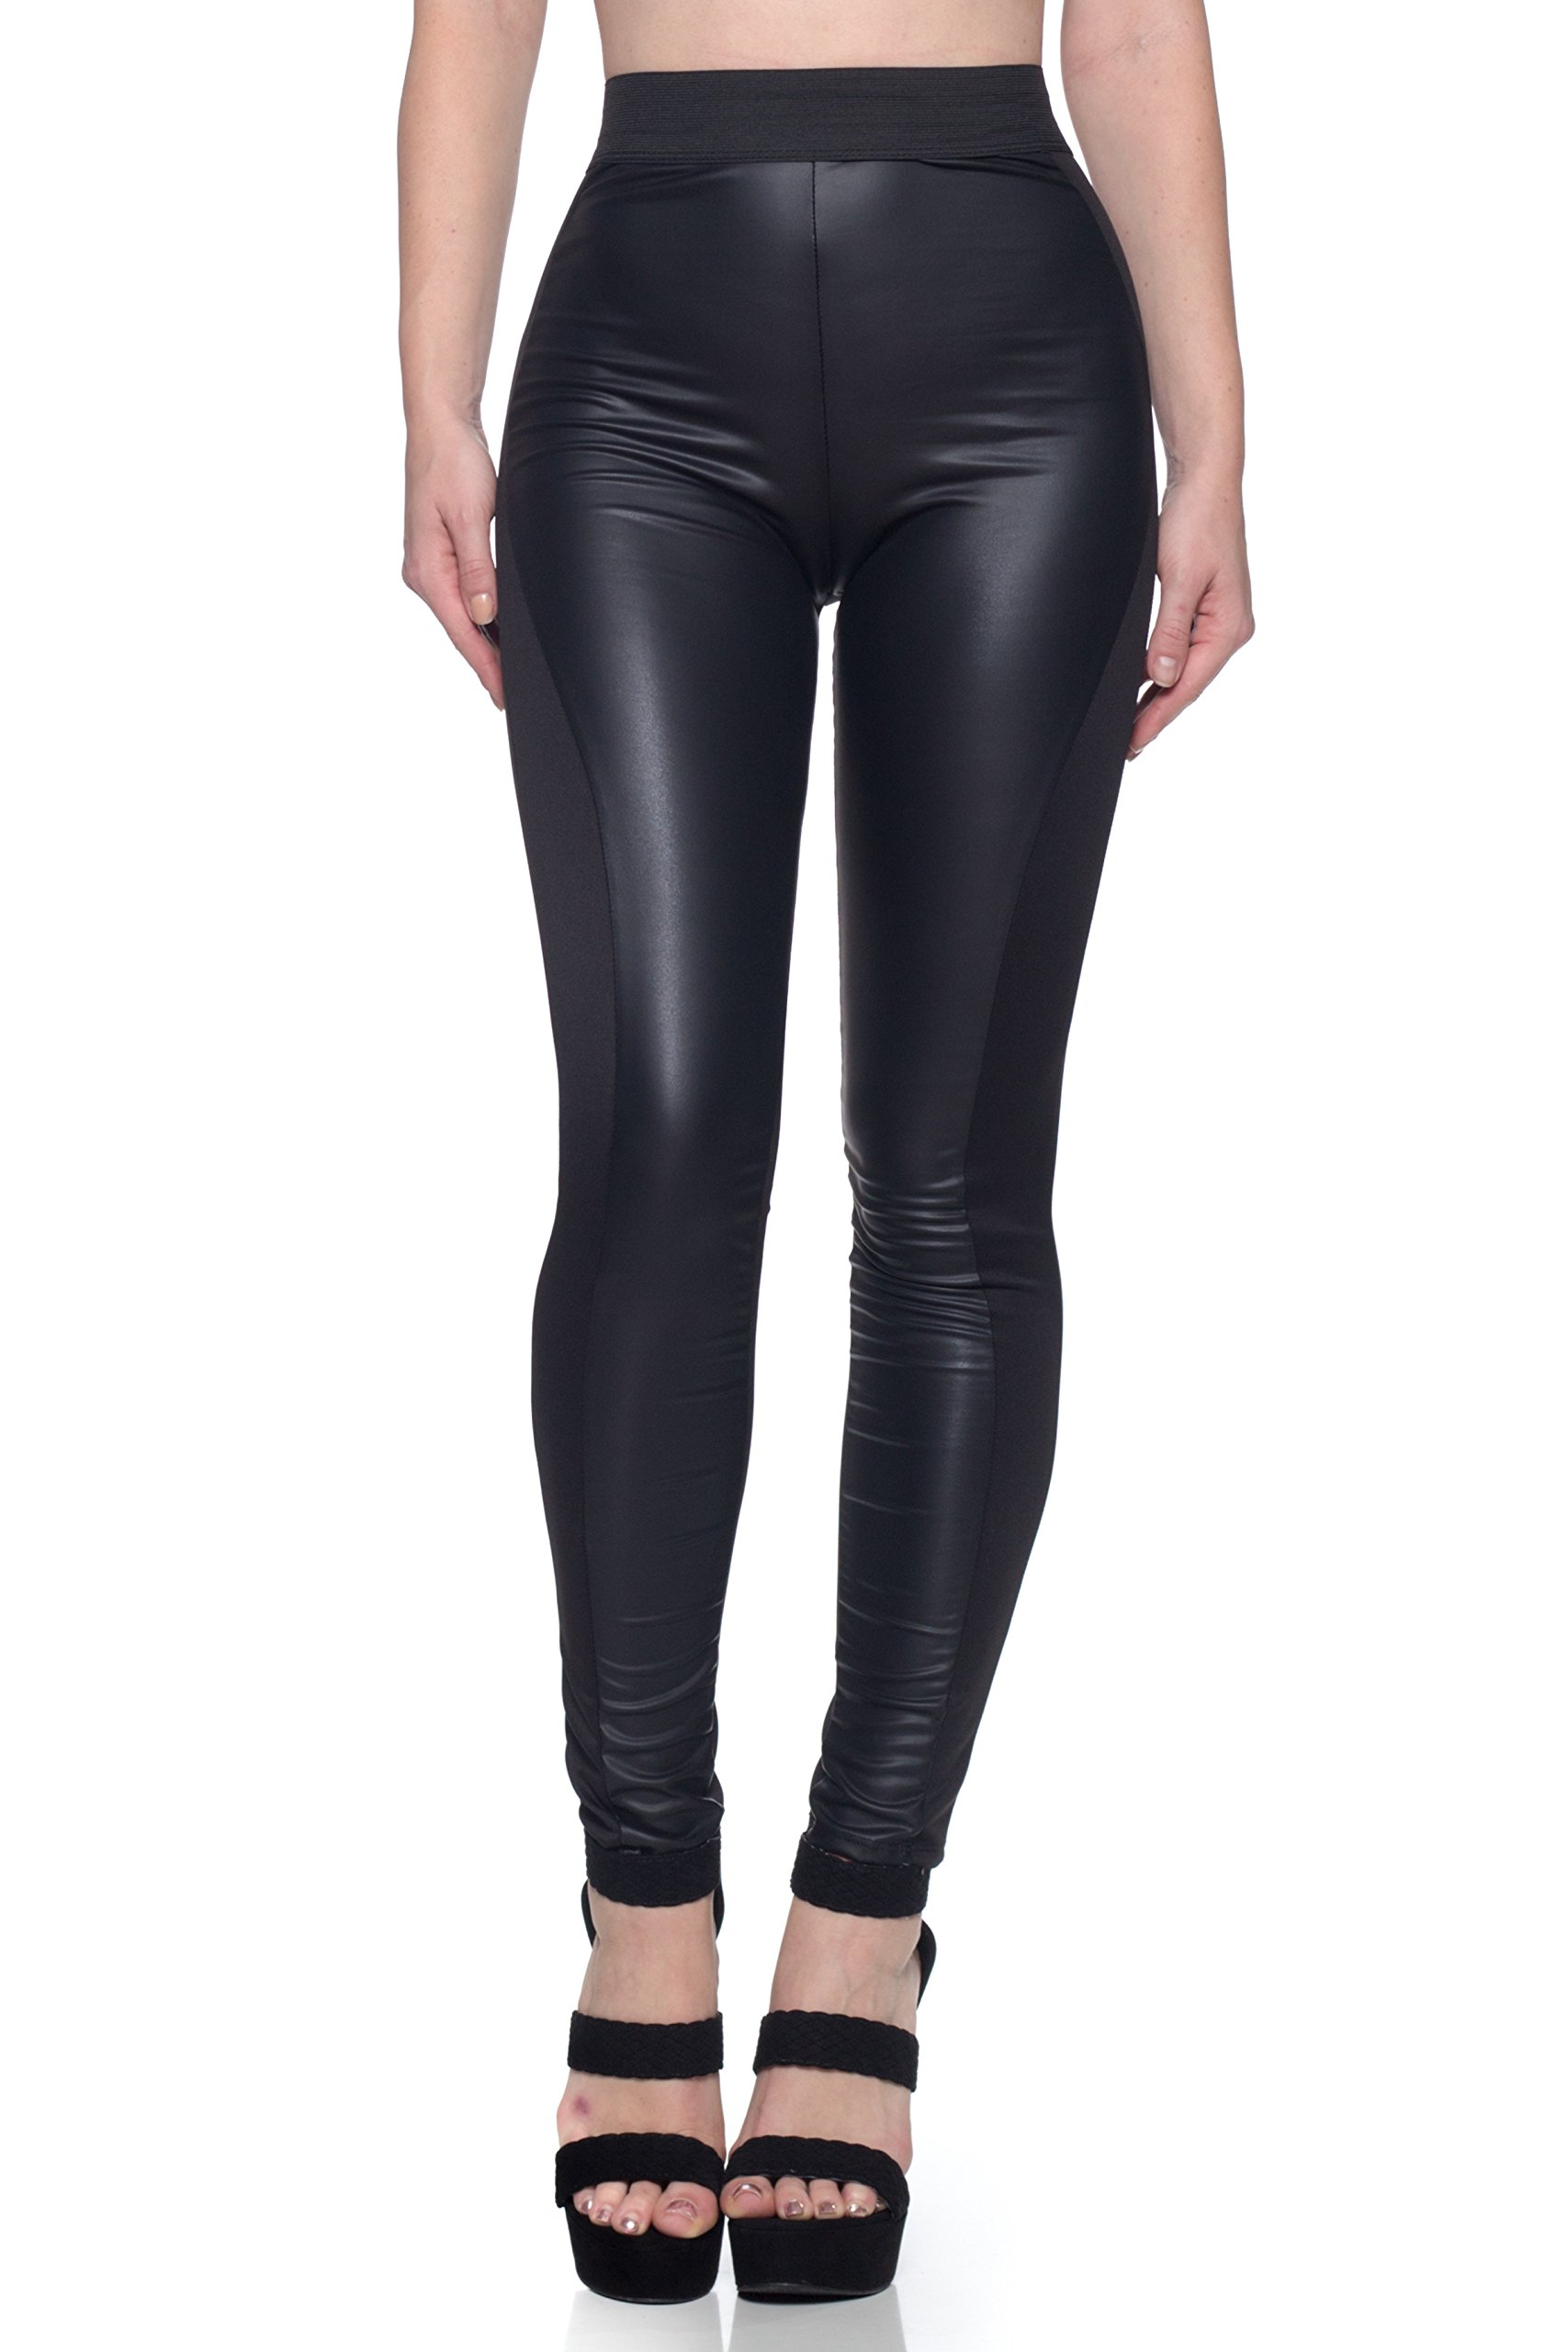 J2 Love Made in USA Front Faux Leather Moto Legging (up to 5X) by Cemi Ceri (Image #1)